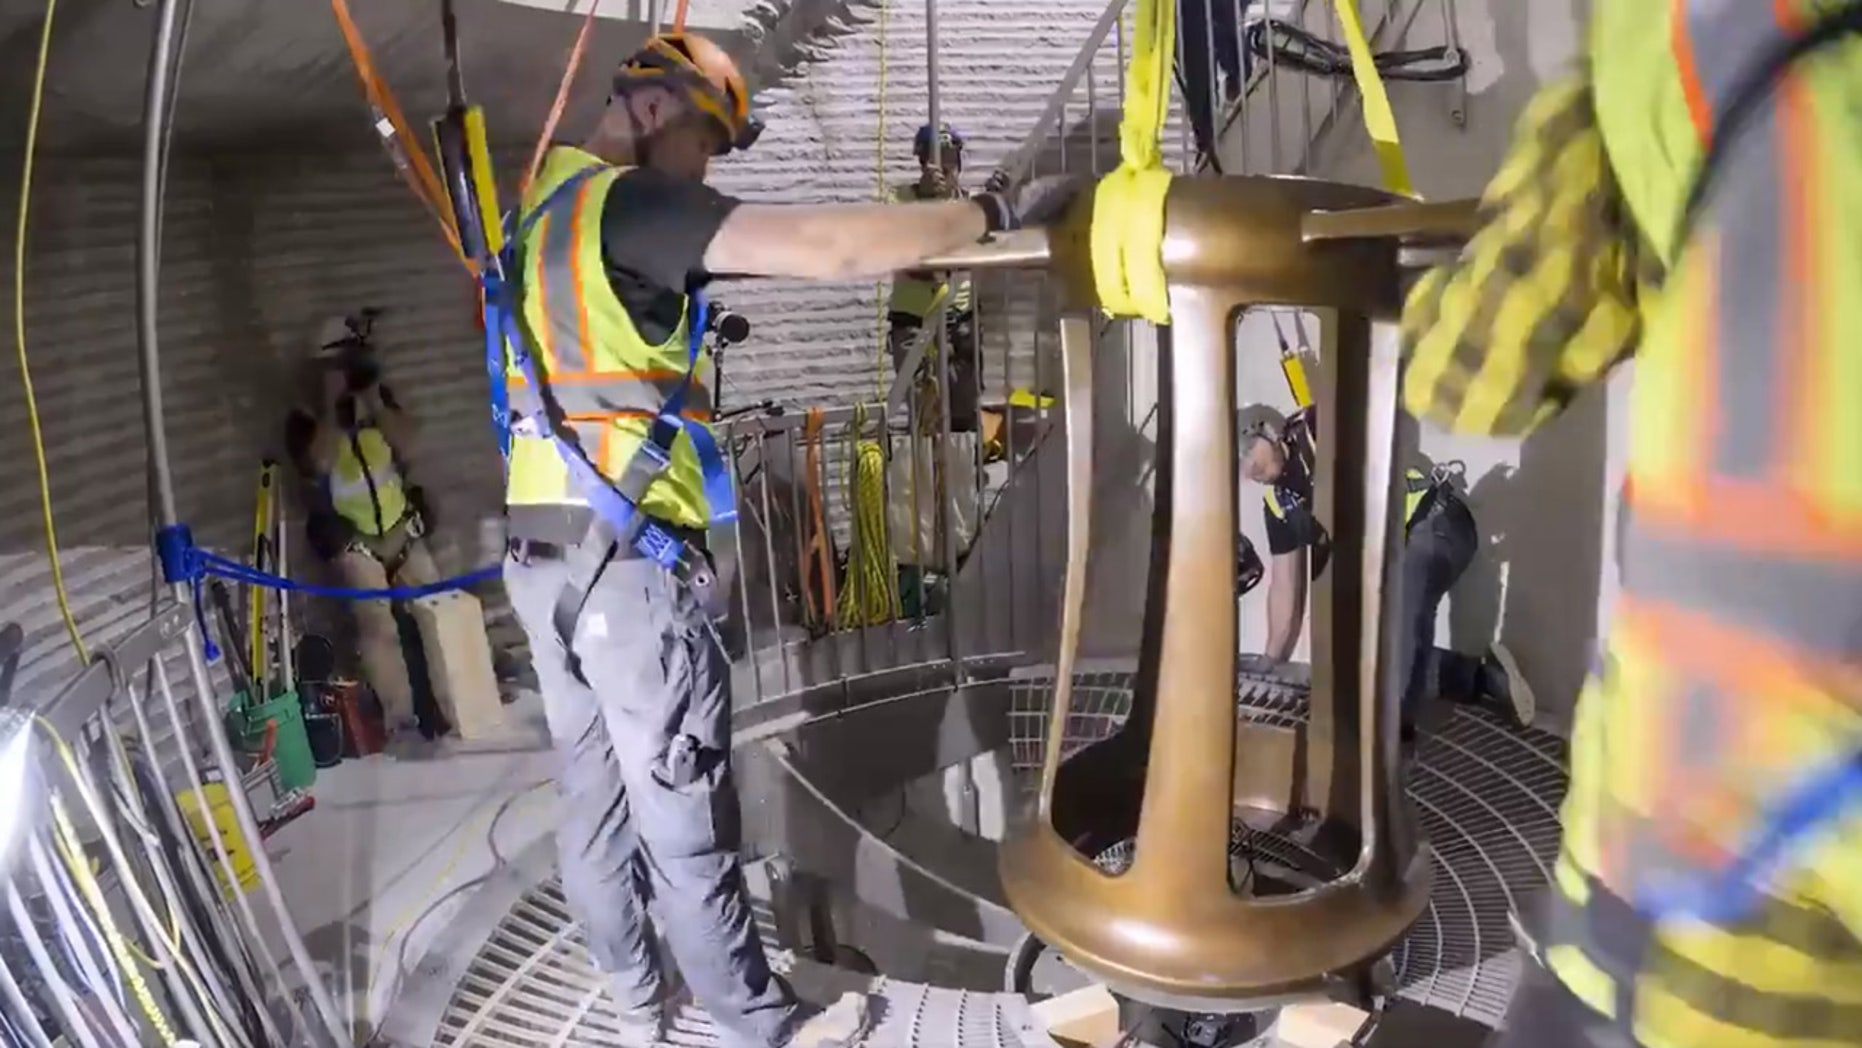 Construction has begun on a project to build a 10,000-year clock, funded by Amazon CEO Jeff Bezos.